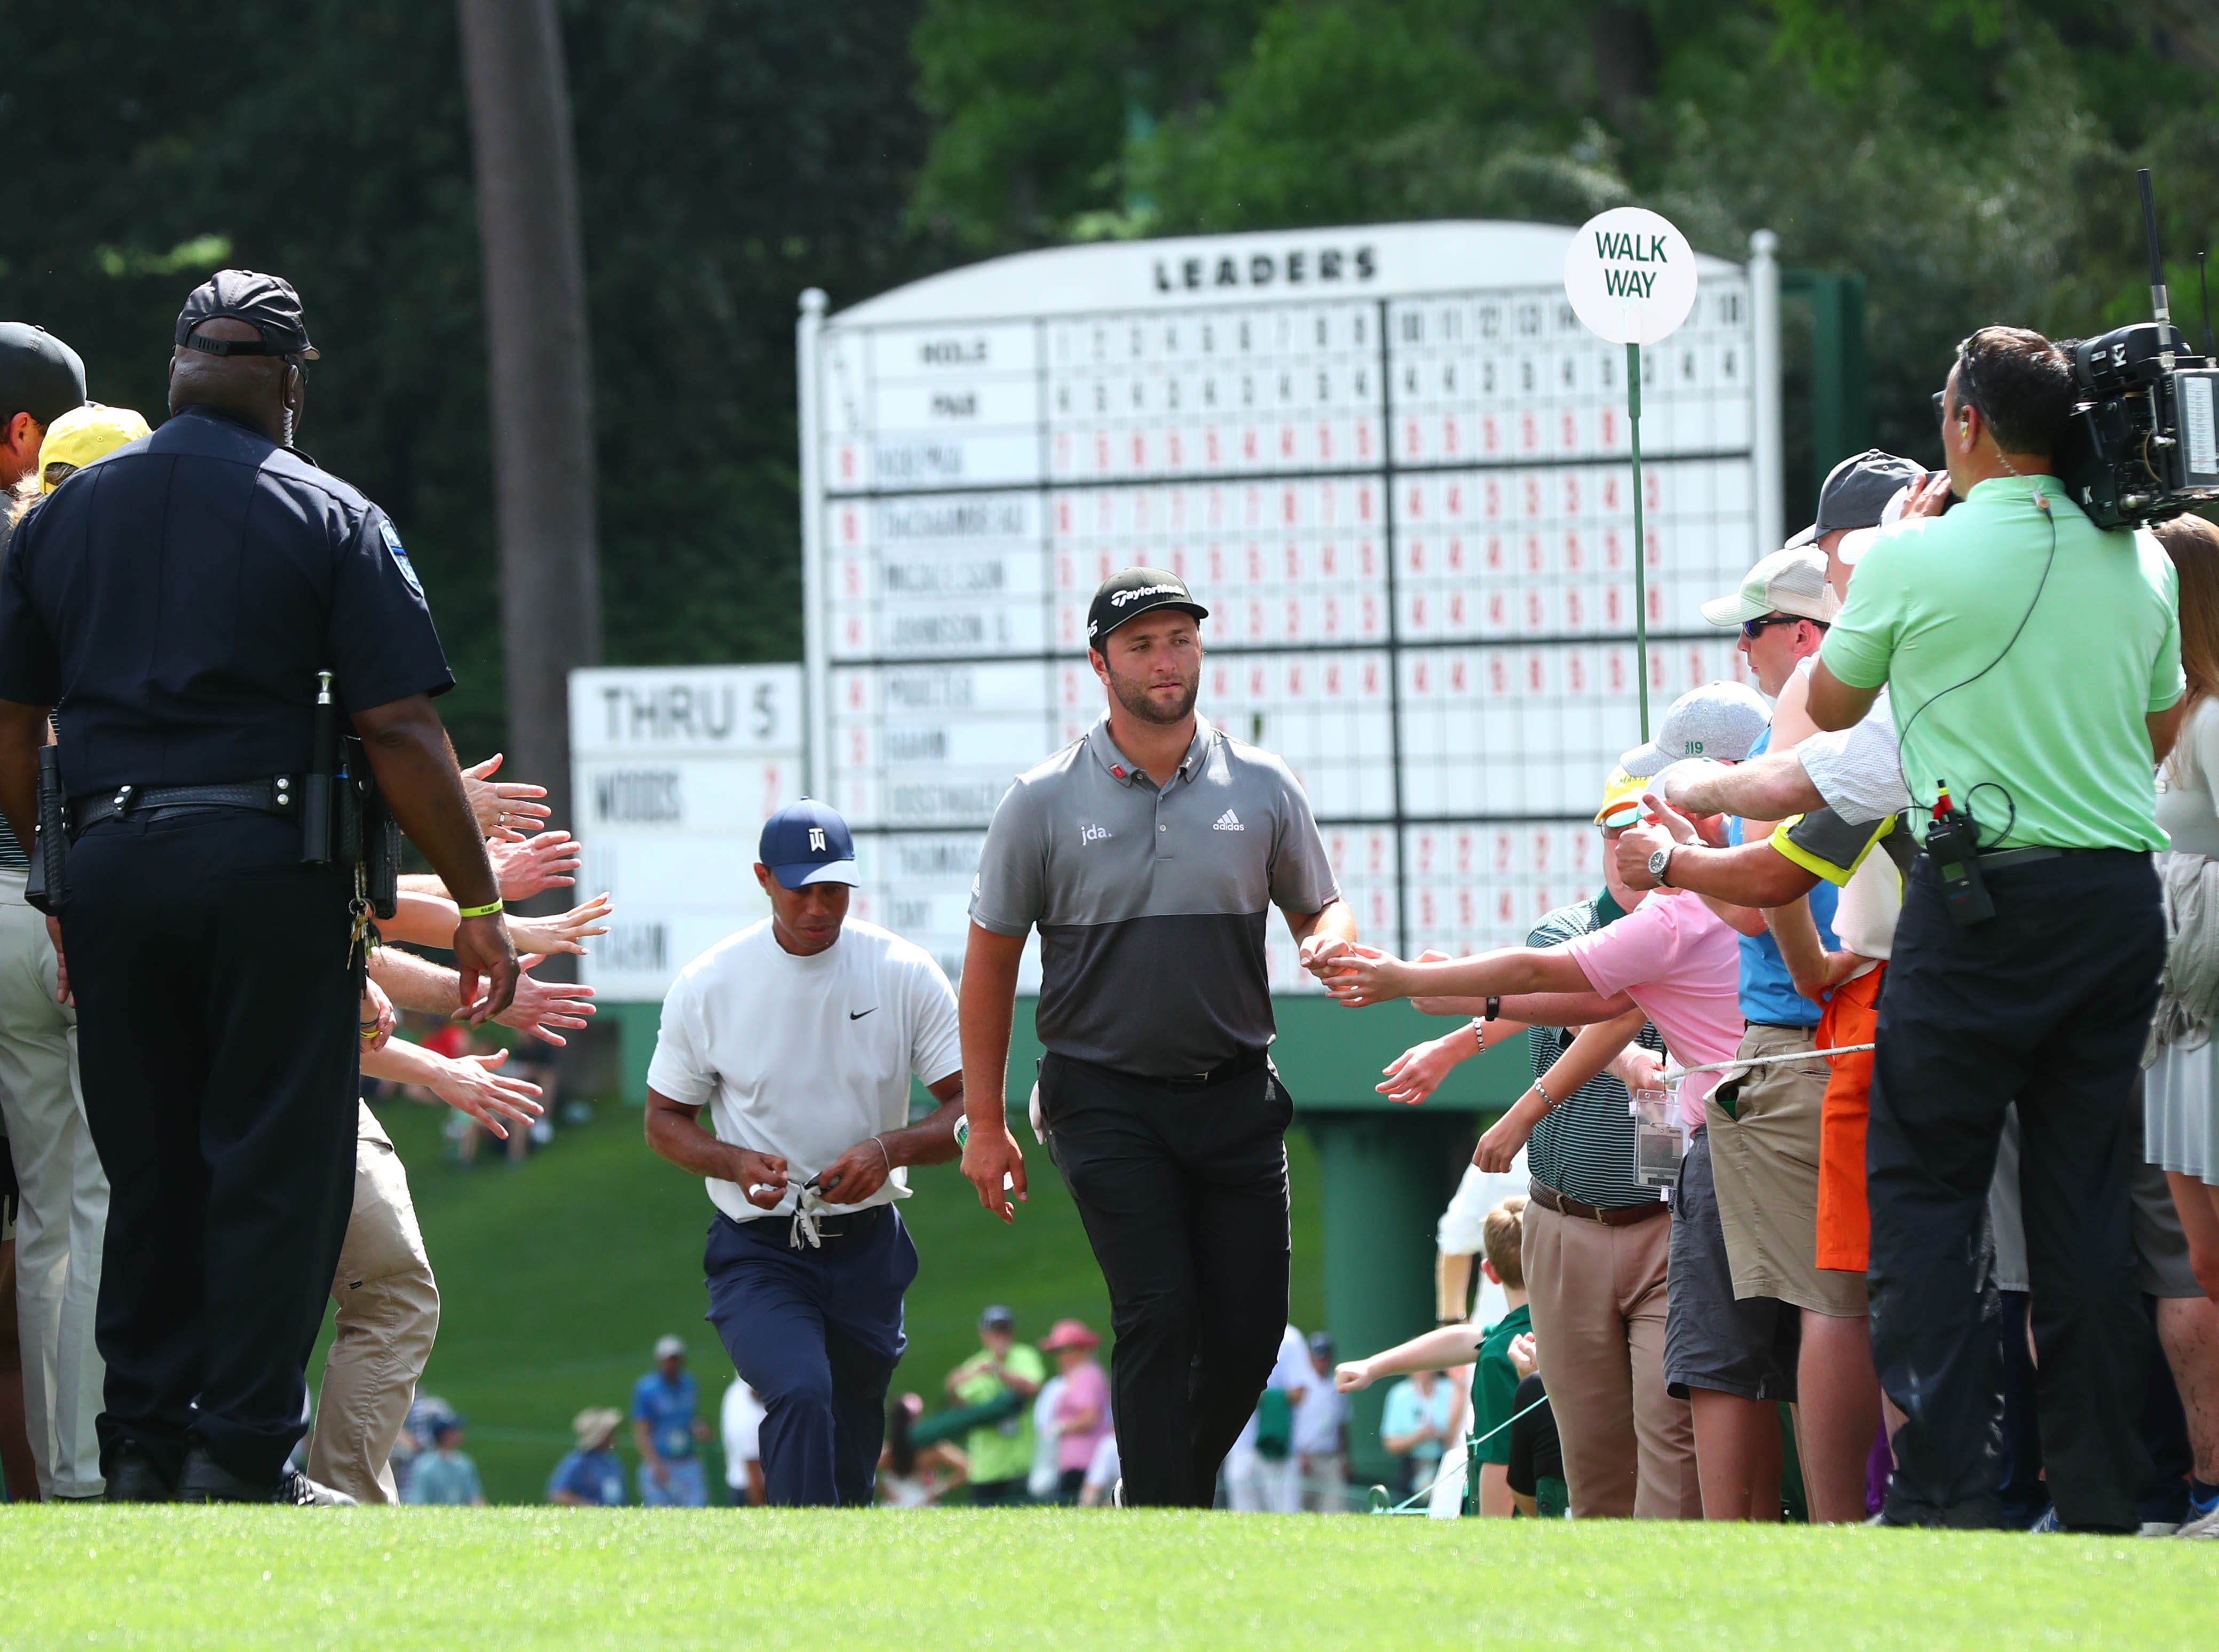 Apr 12, 2019; Augusta, GA, USA; Jon Rahm (right) and Tiger Woods walk to the 7th tee during the second round of The Masters golf tournament at Augusta National Golf Club. Mandatory Credit: Rob Schumacher-USA TODAY Sports